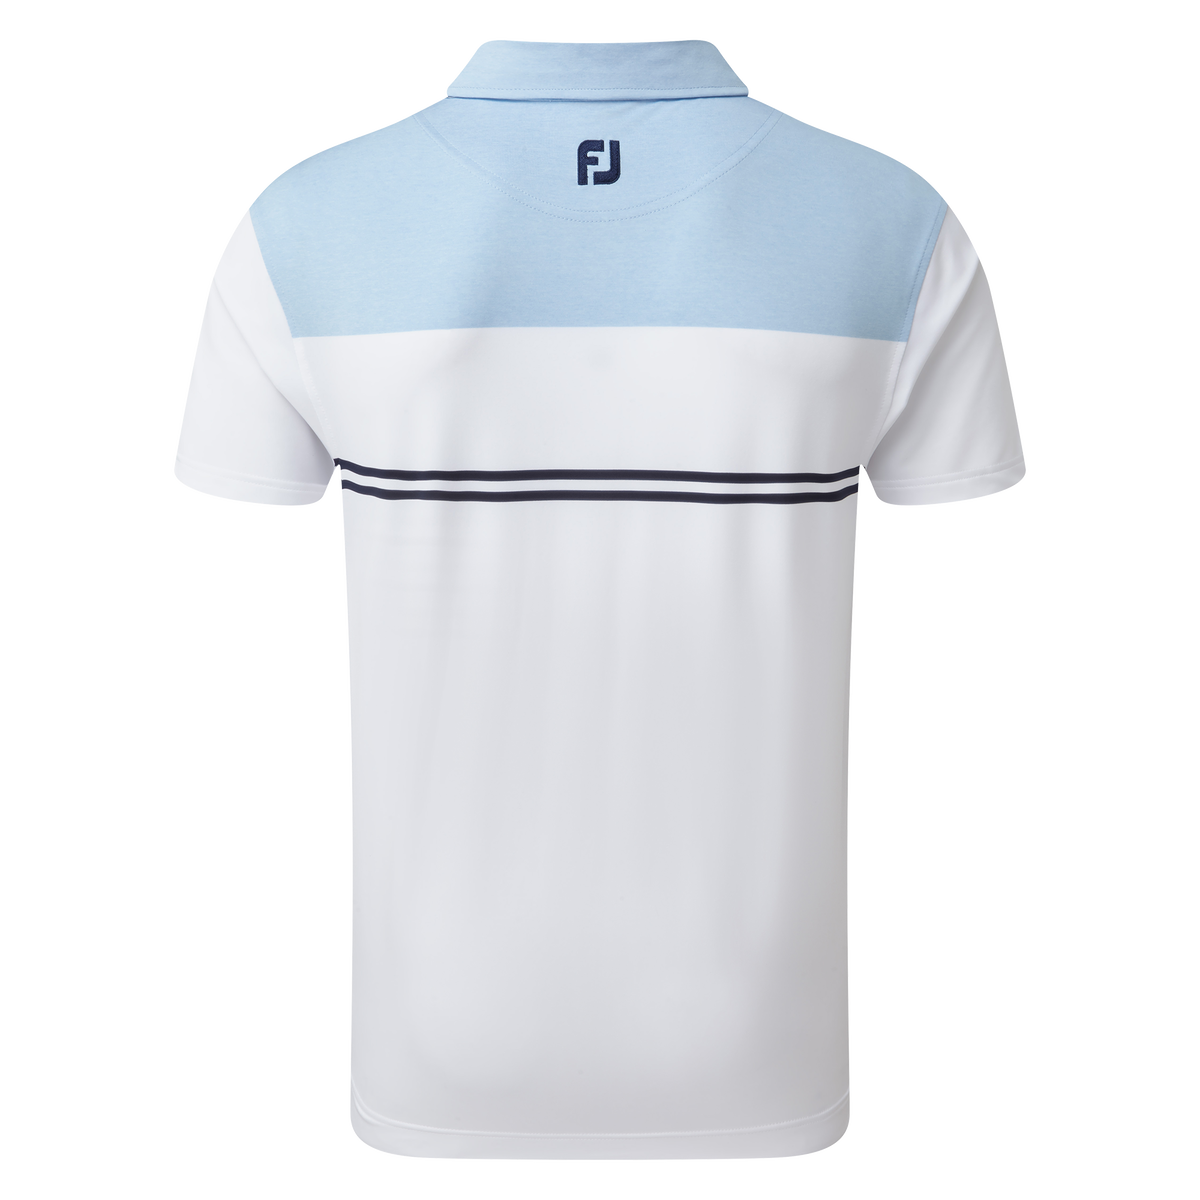 Heather Colour Block Lisle Performance Shirts